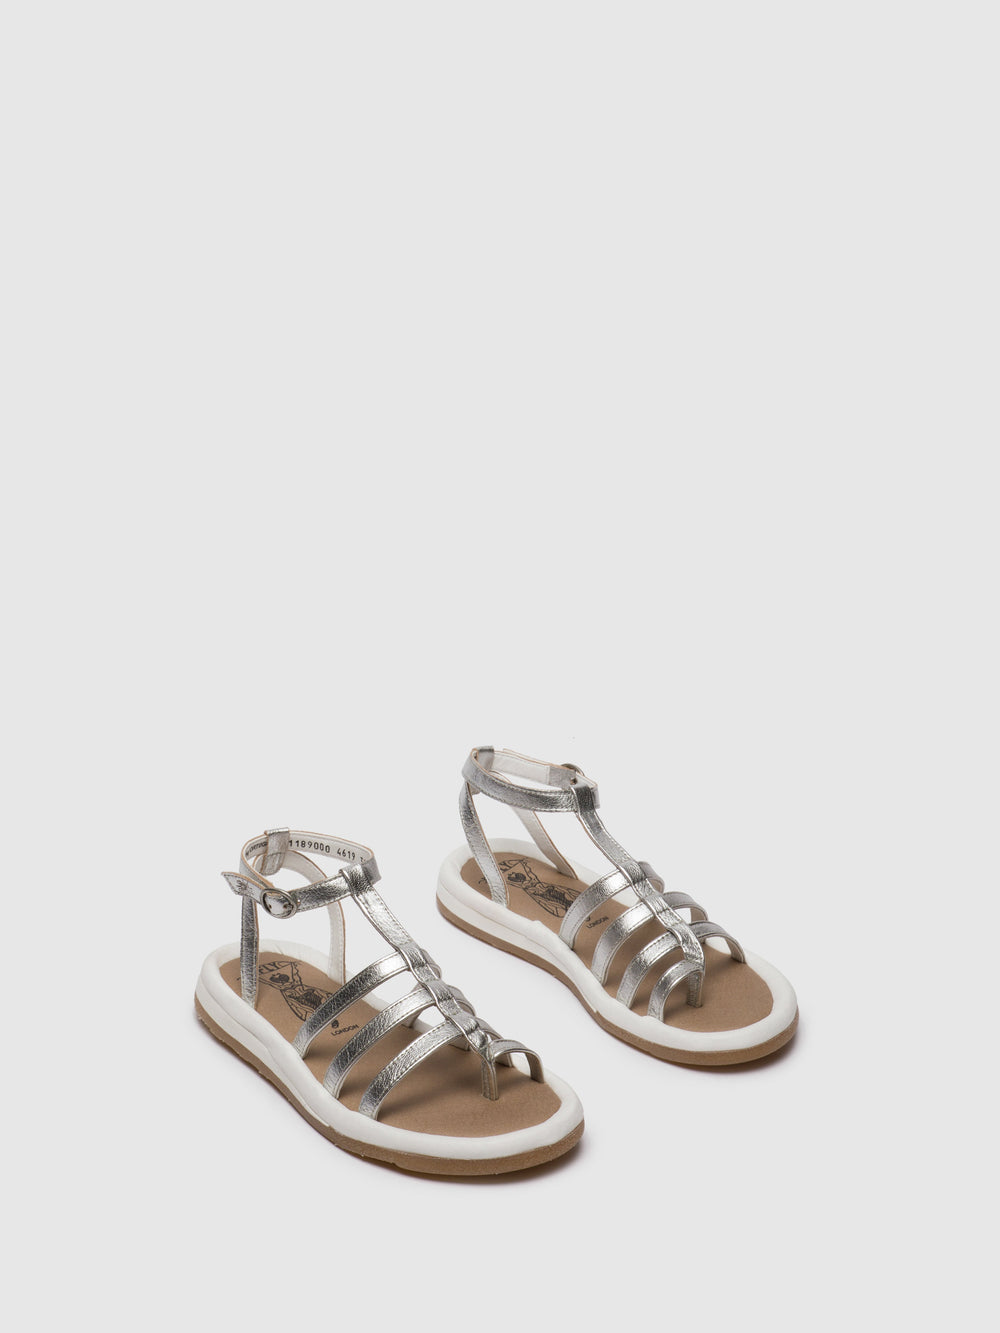 Gladiator Sandals FONT189FLY SILVER